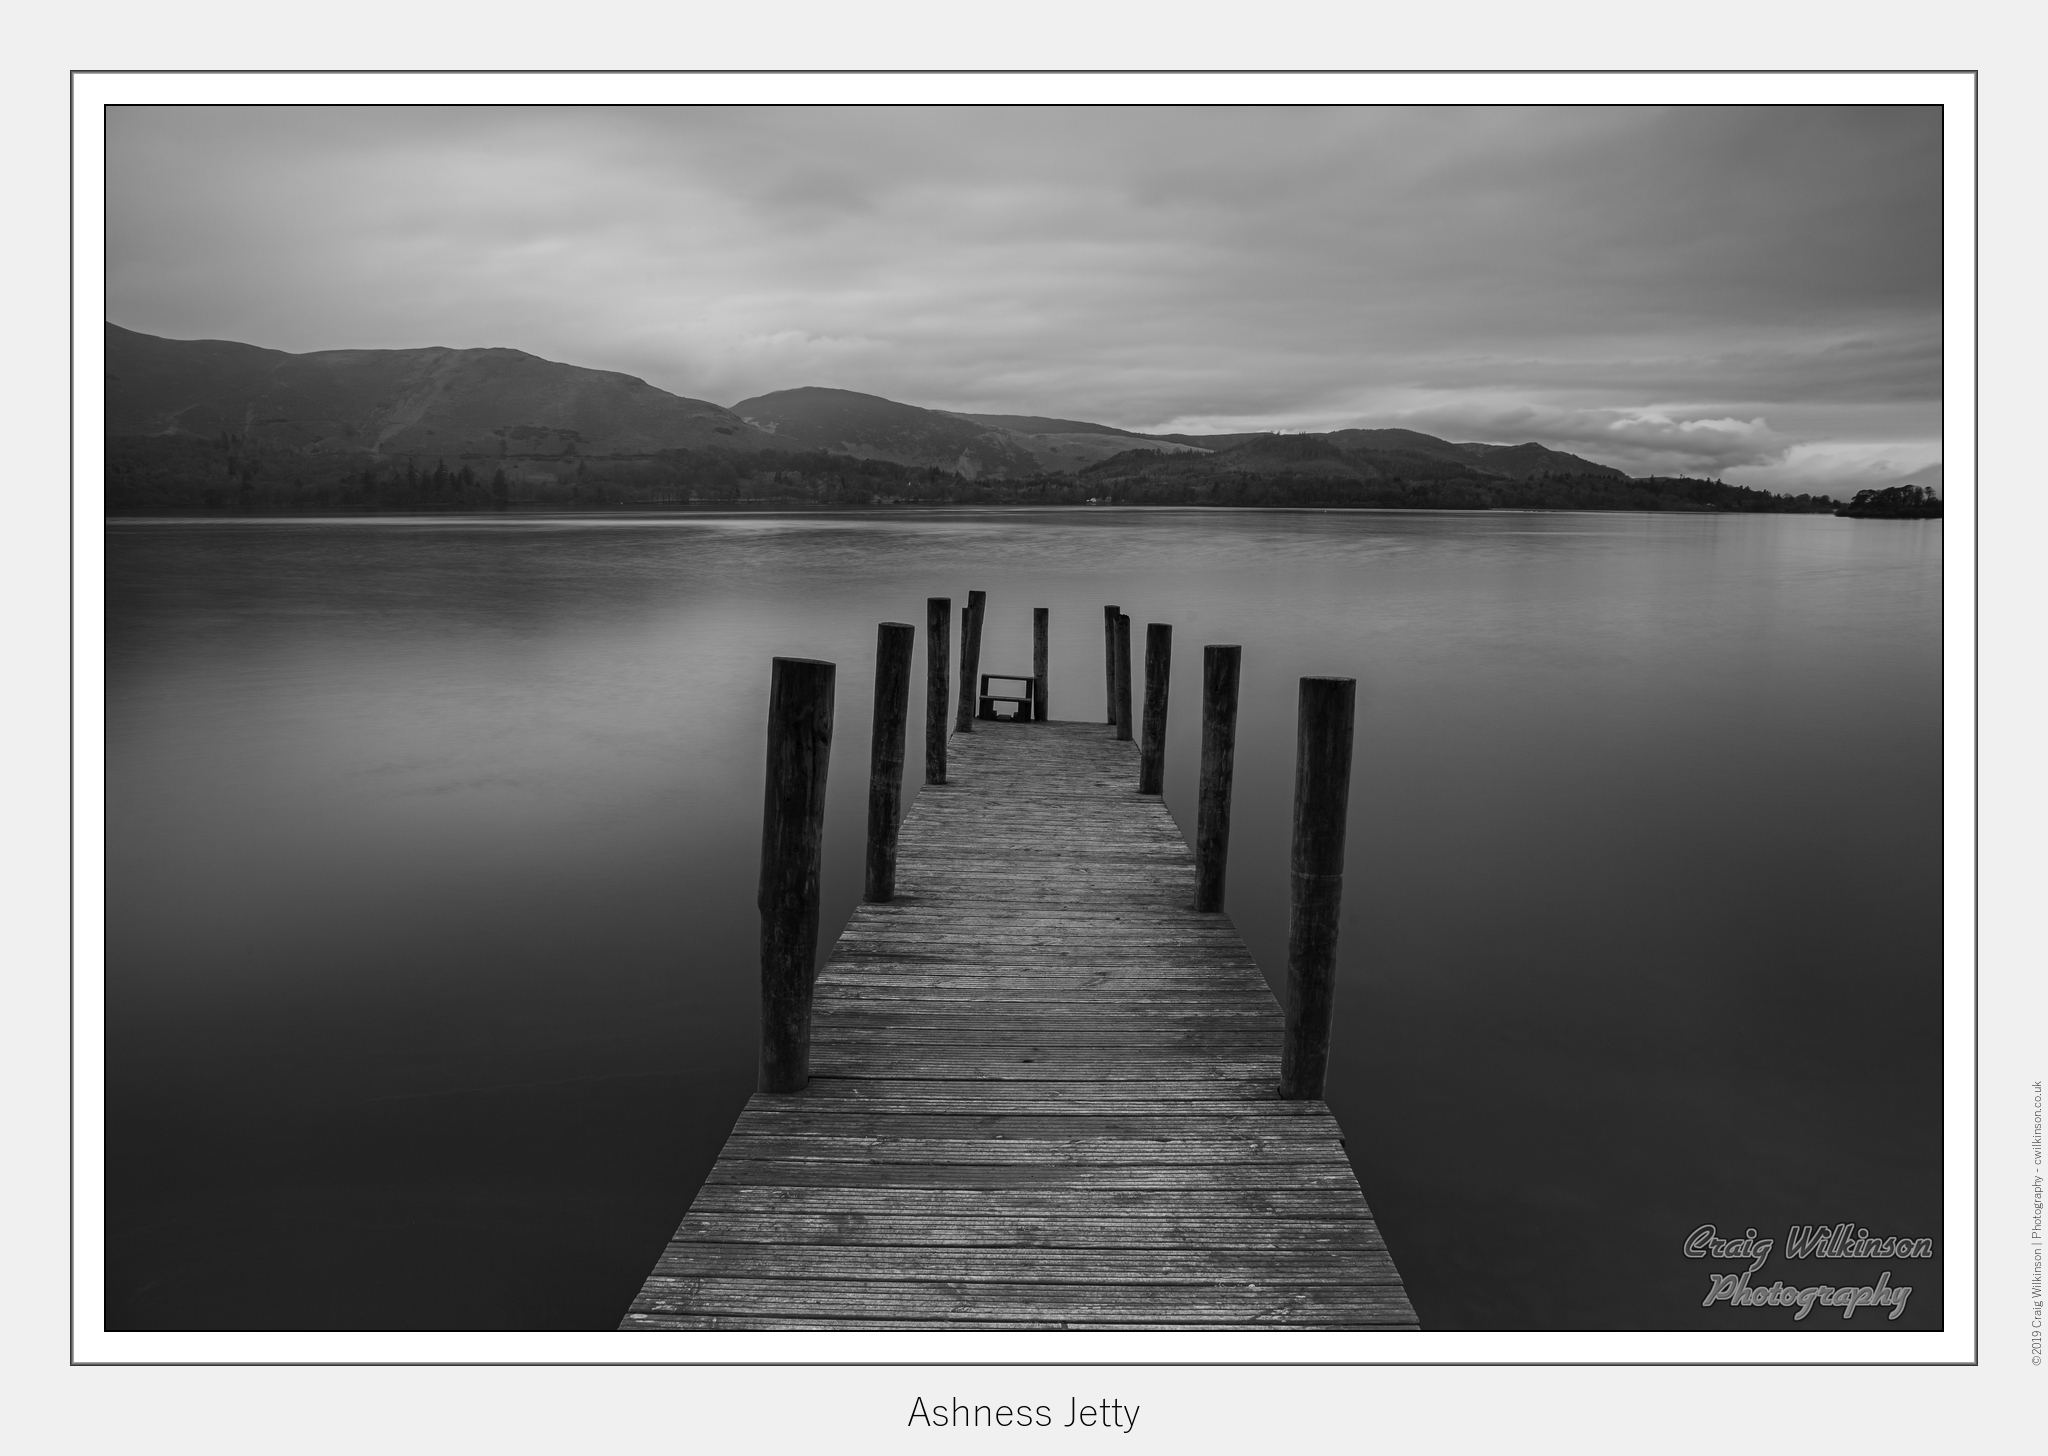 01-Ashness Jetty - (5760 x 3840).jpg